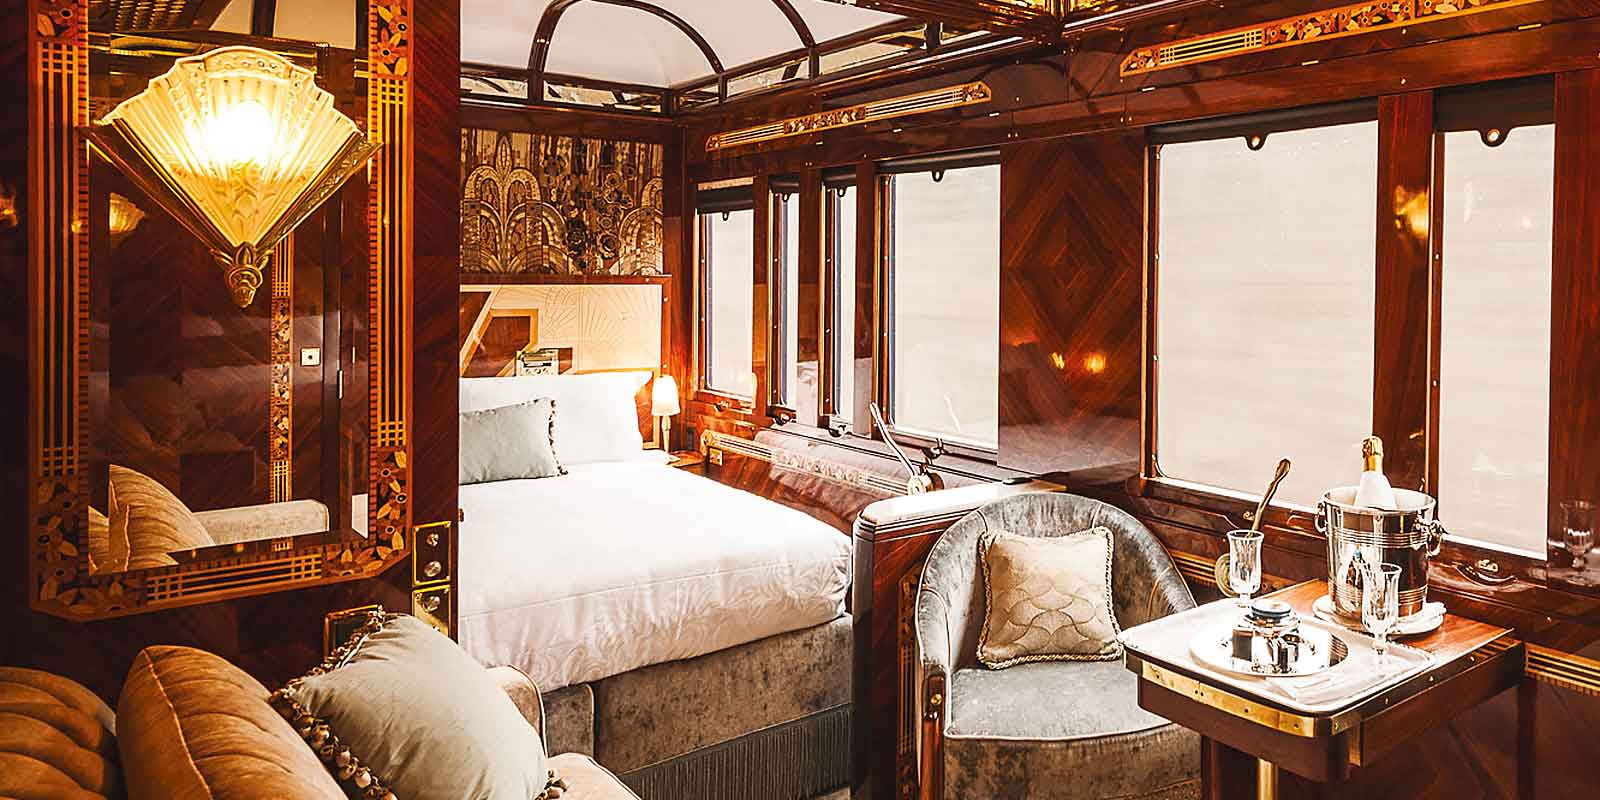 Venice Simplon Orient Express Grand Suite